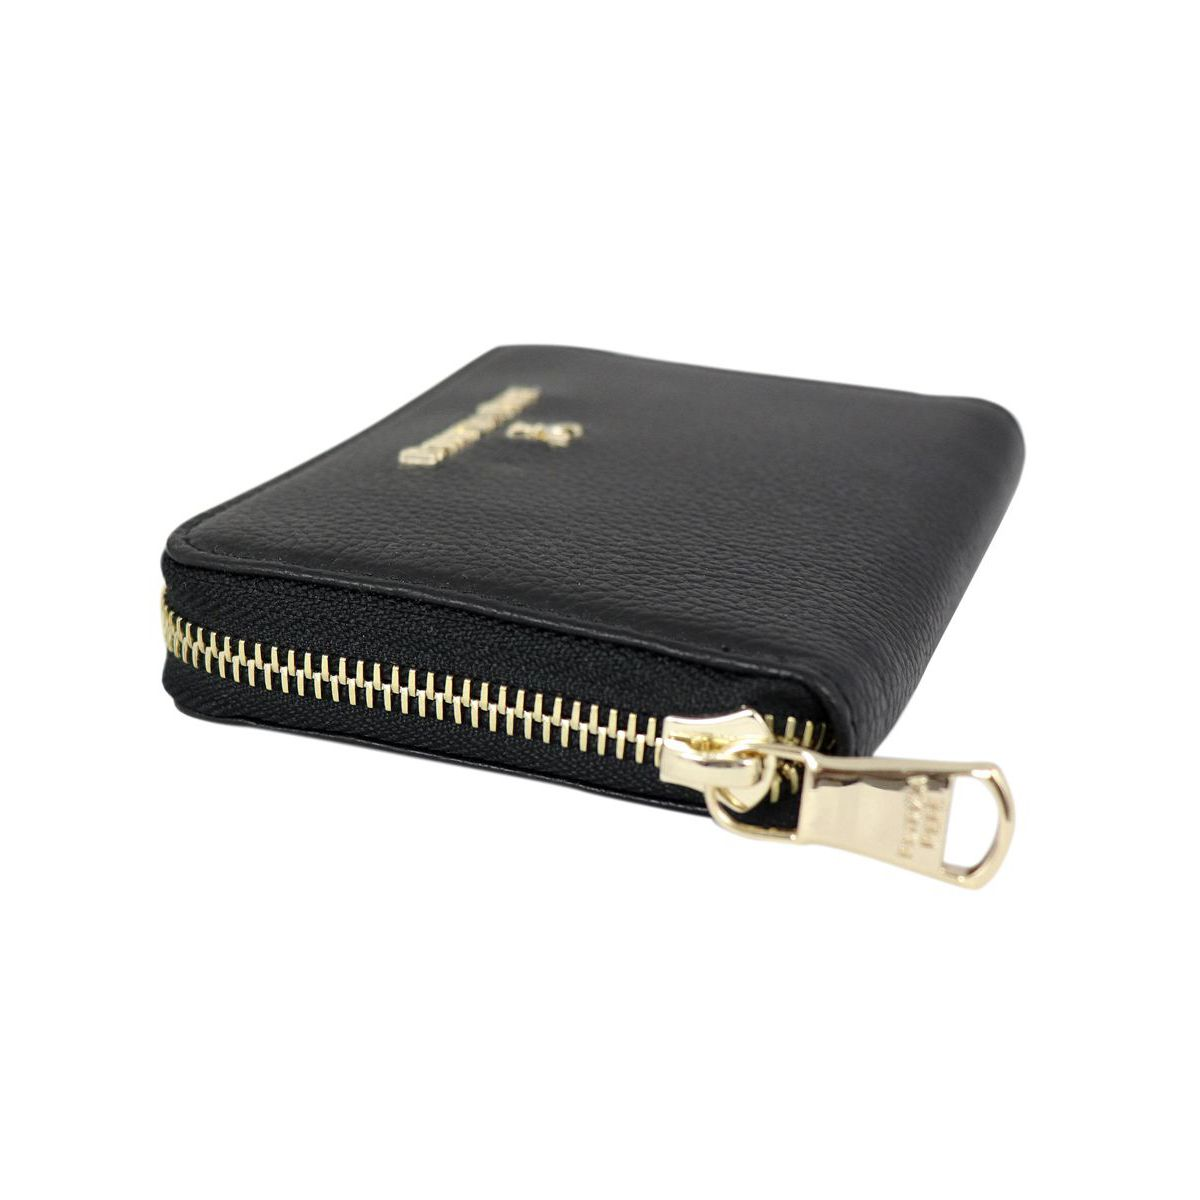 Textured leather wallet with logo Black Patrizia Pepe